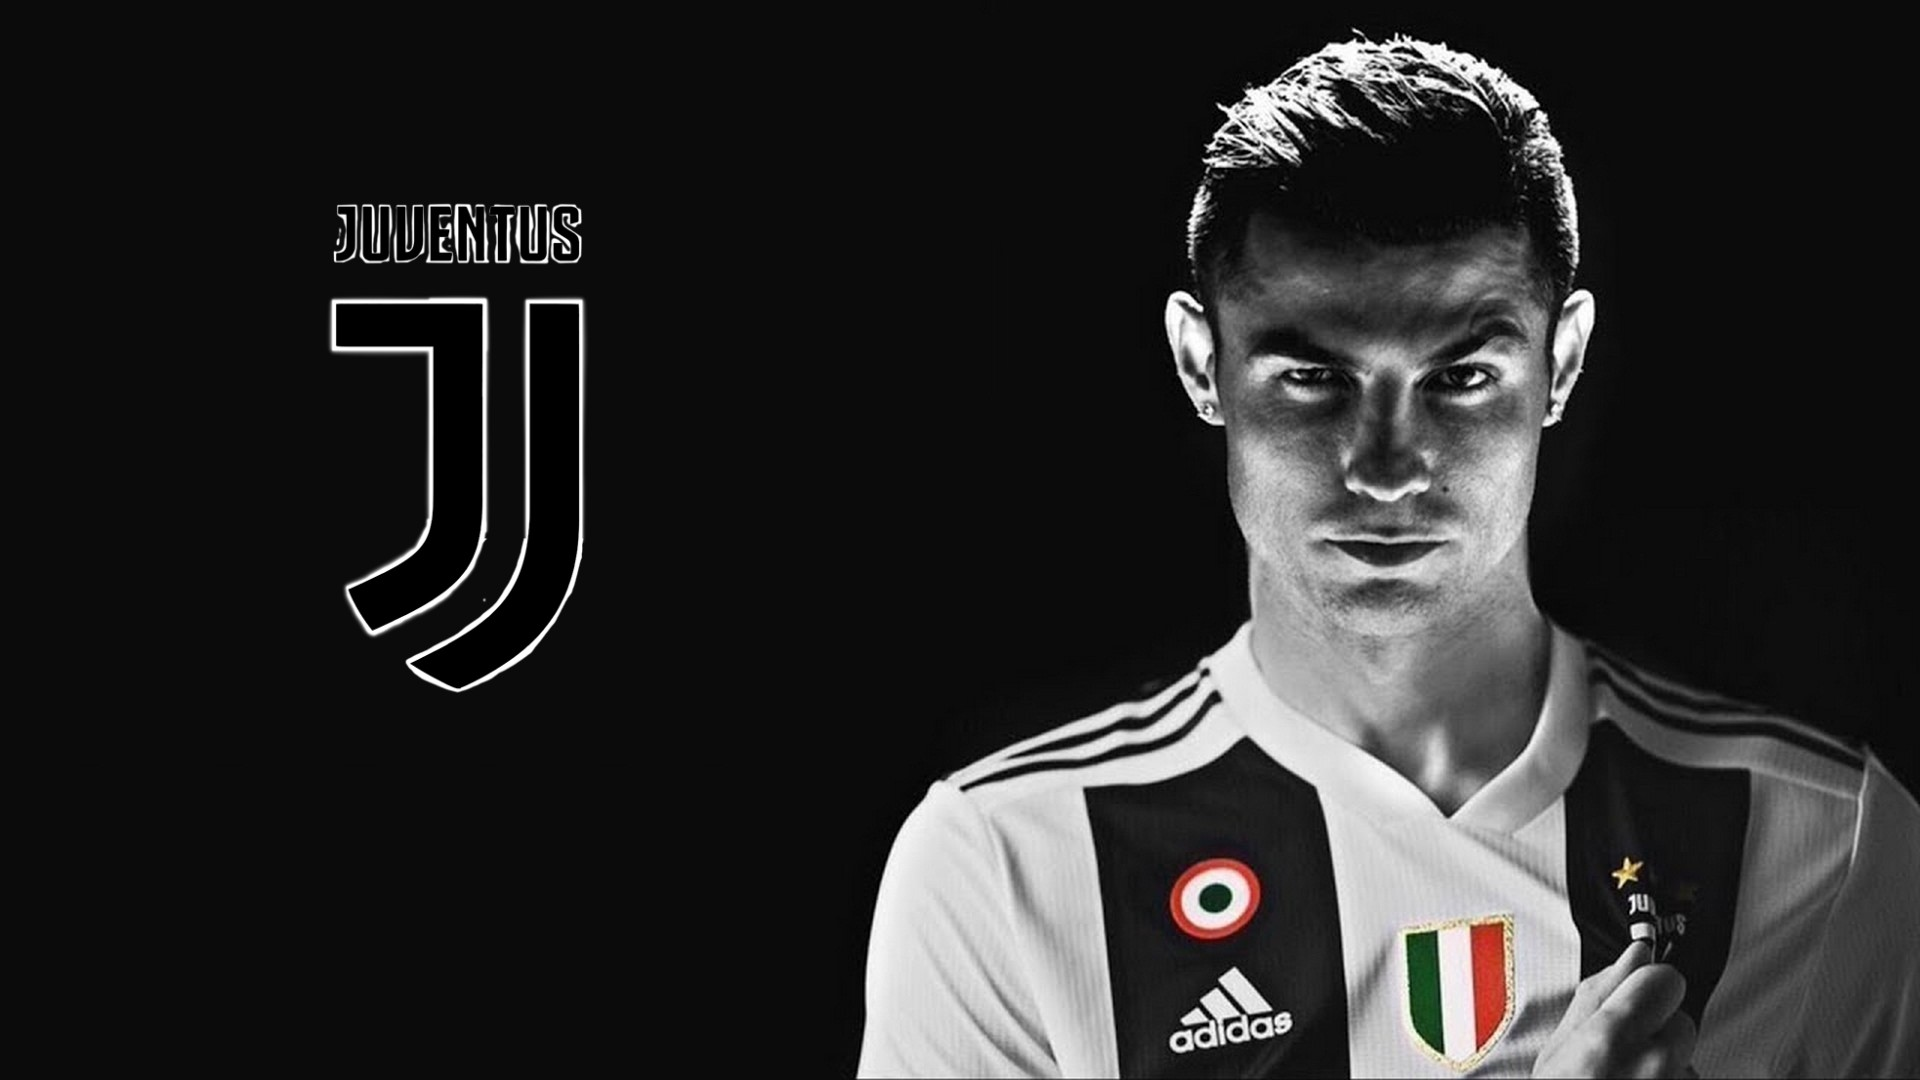 Cristiano Ronaldo Juventus Wallpaper 2021 Football Wallpaper 1920x1080